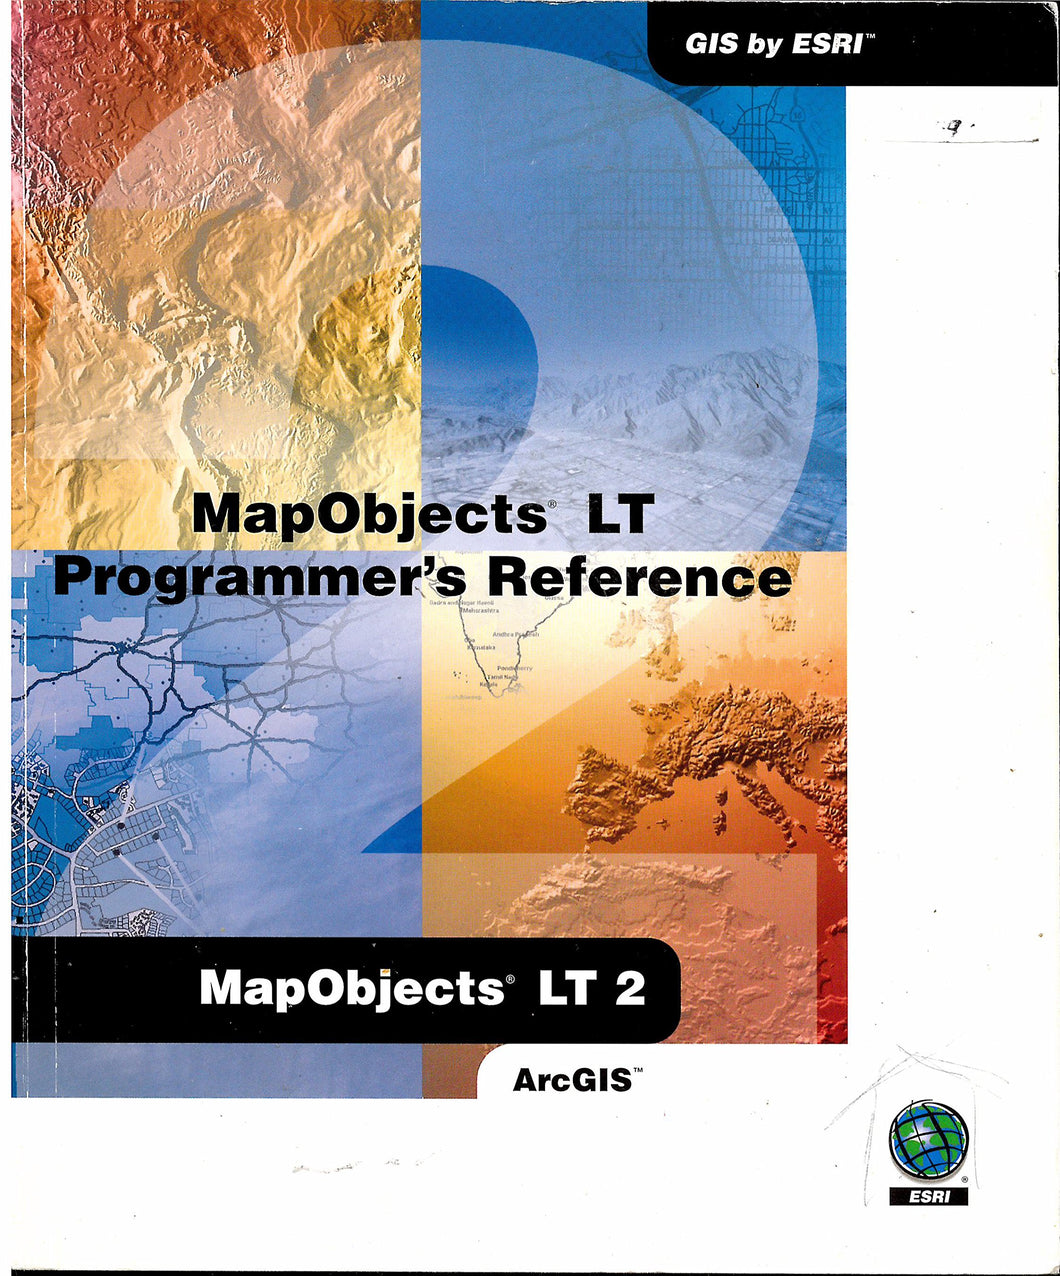 MapObjects LT Programmer's Reference - AarcGIS - GIS by Esri